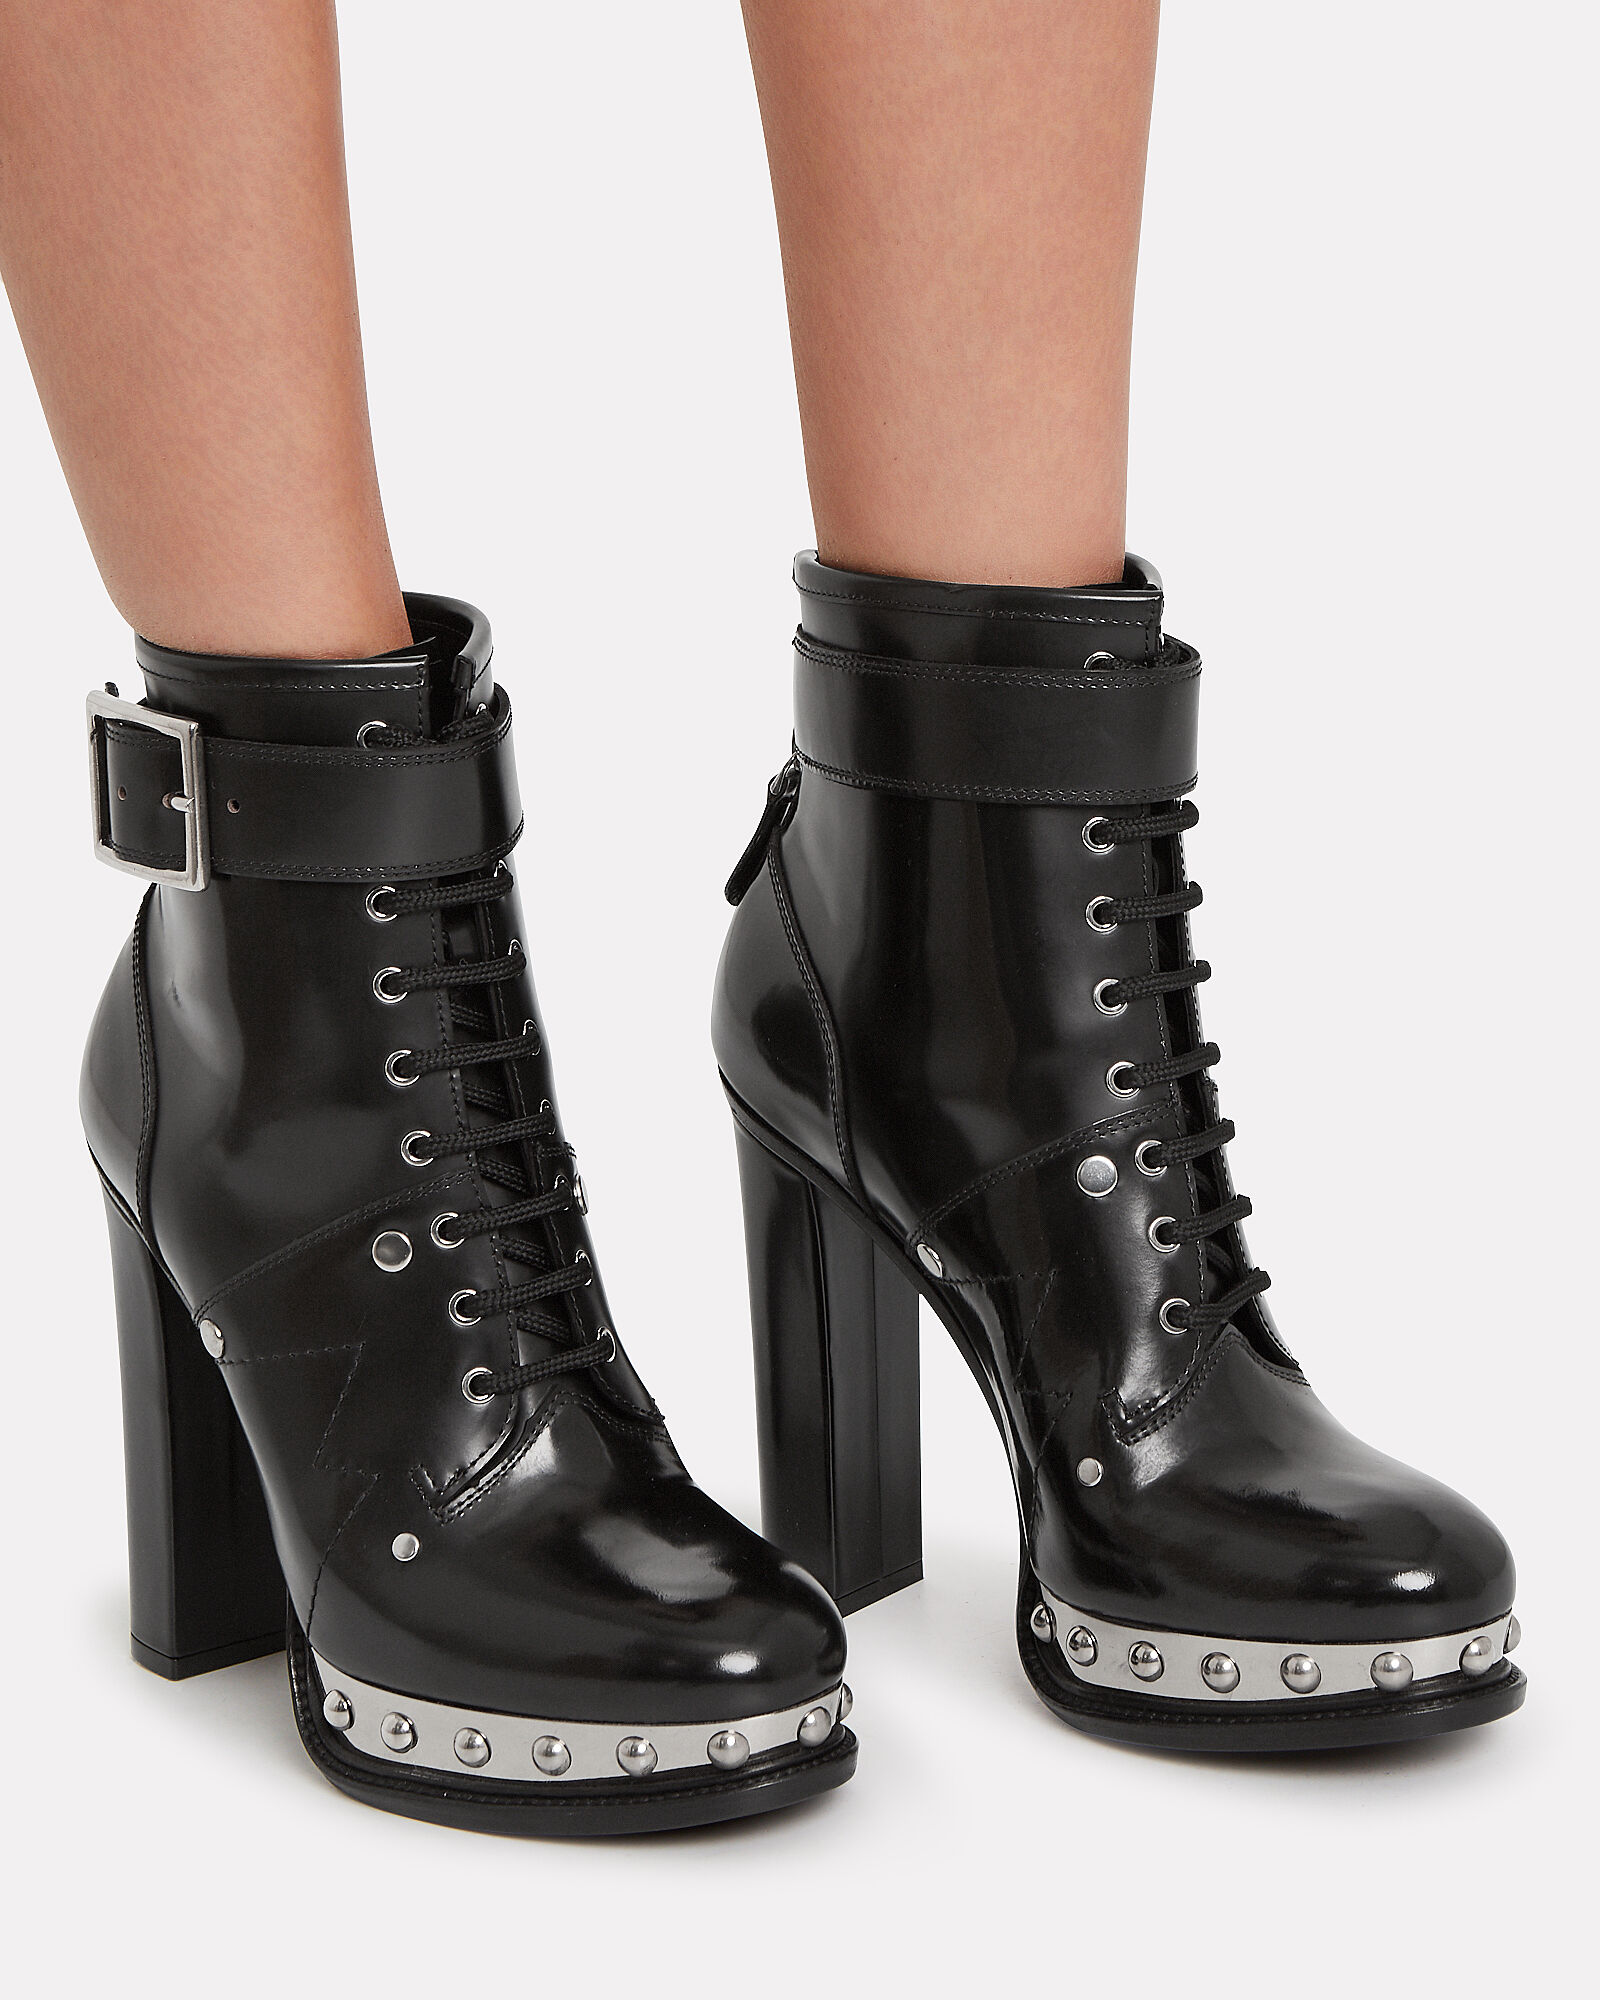 Silver Sole Lace-Up Ankle Boots, BLACK, hi-res